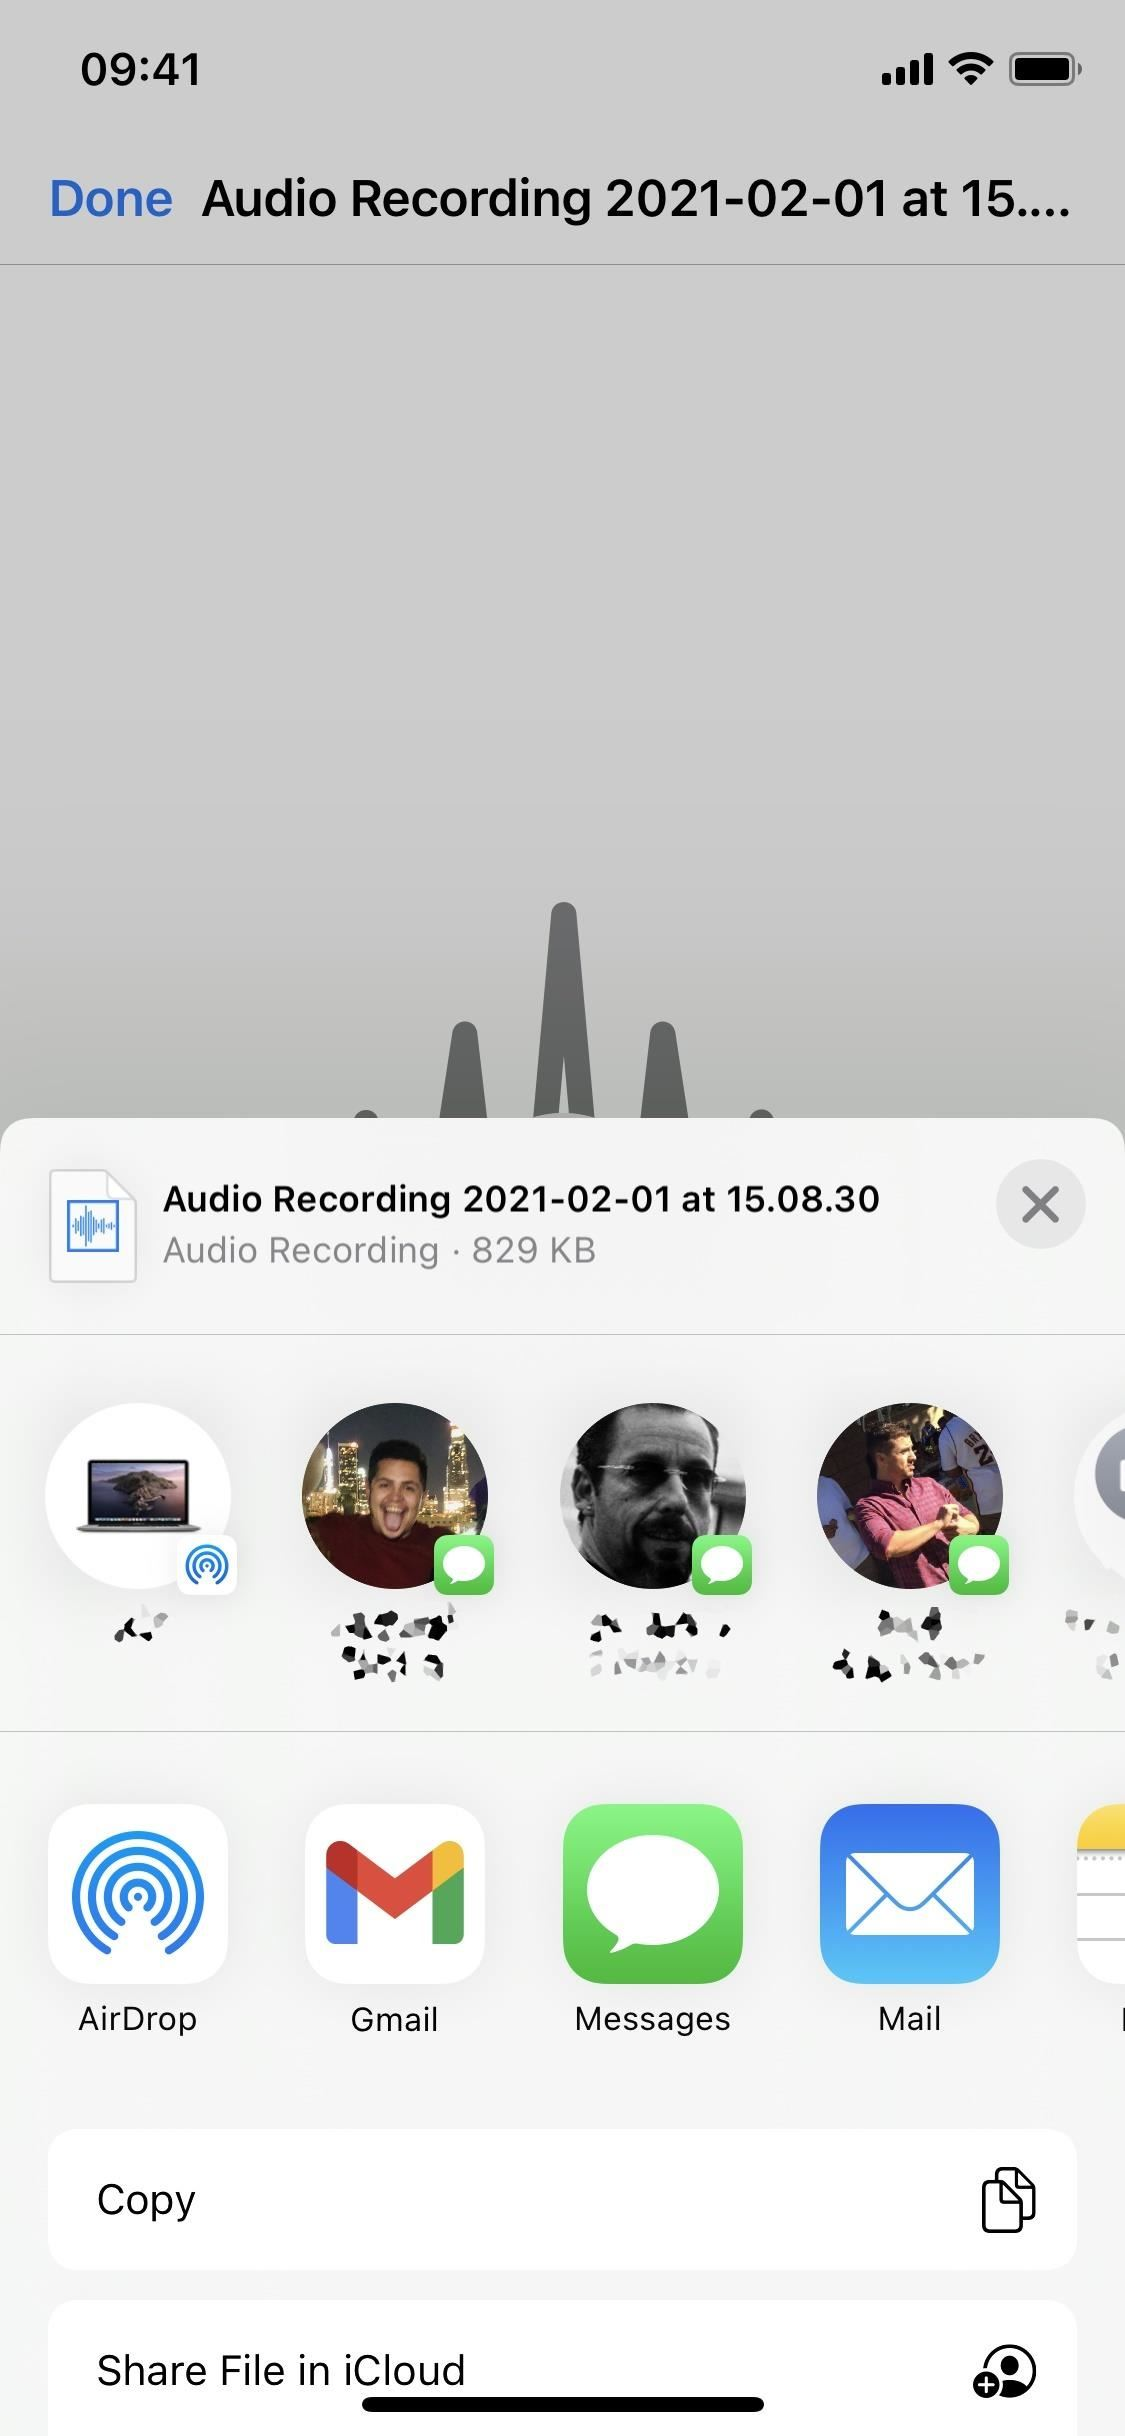 The Easiest Way to Secretly Record Someone's Conversation with Your iPhone